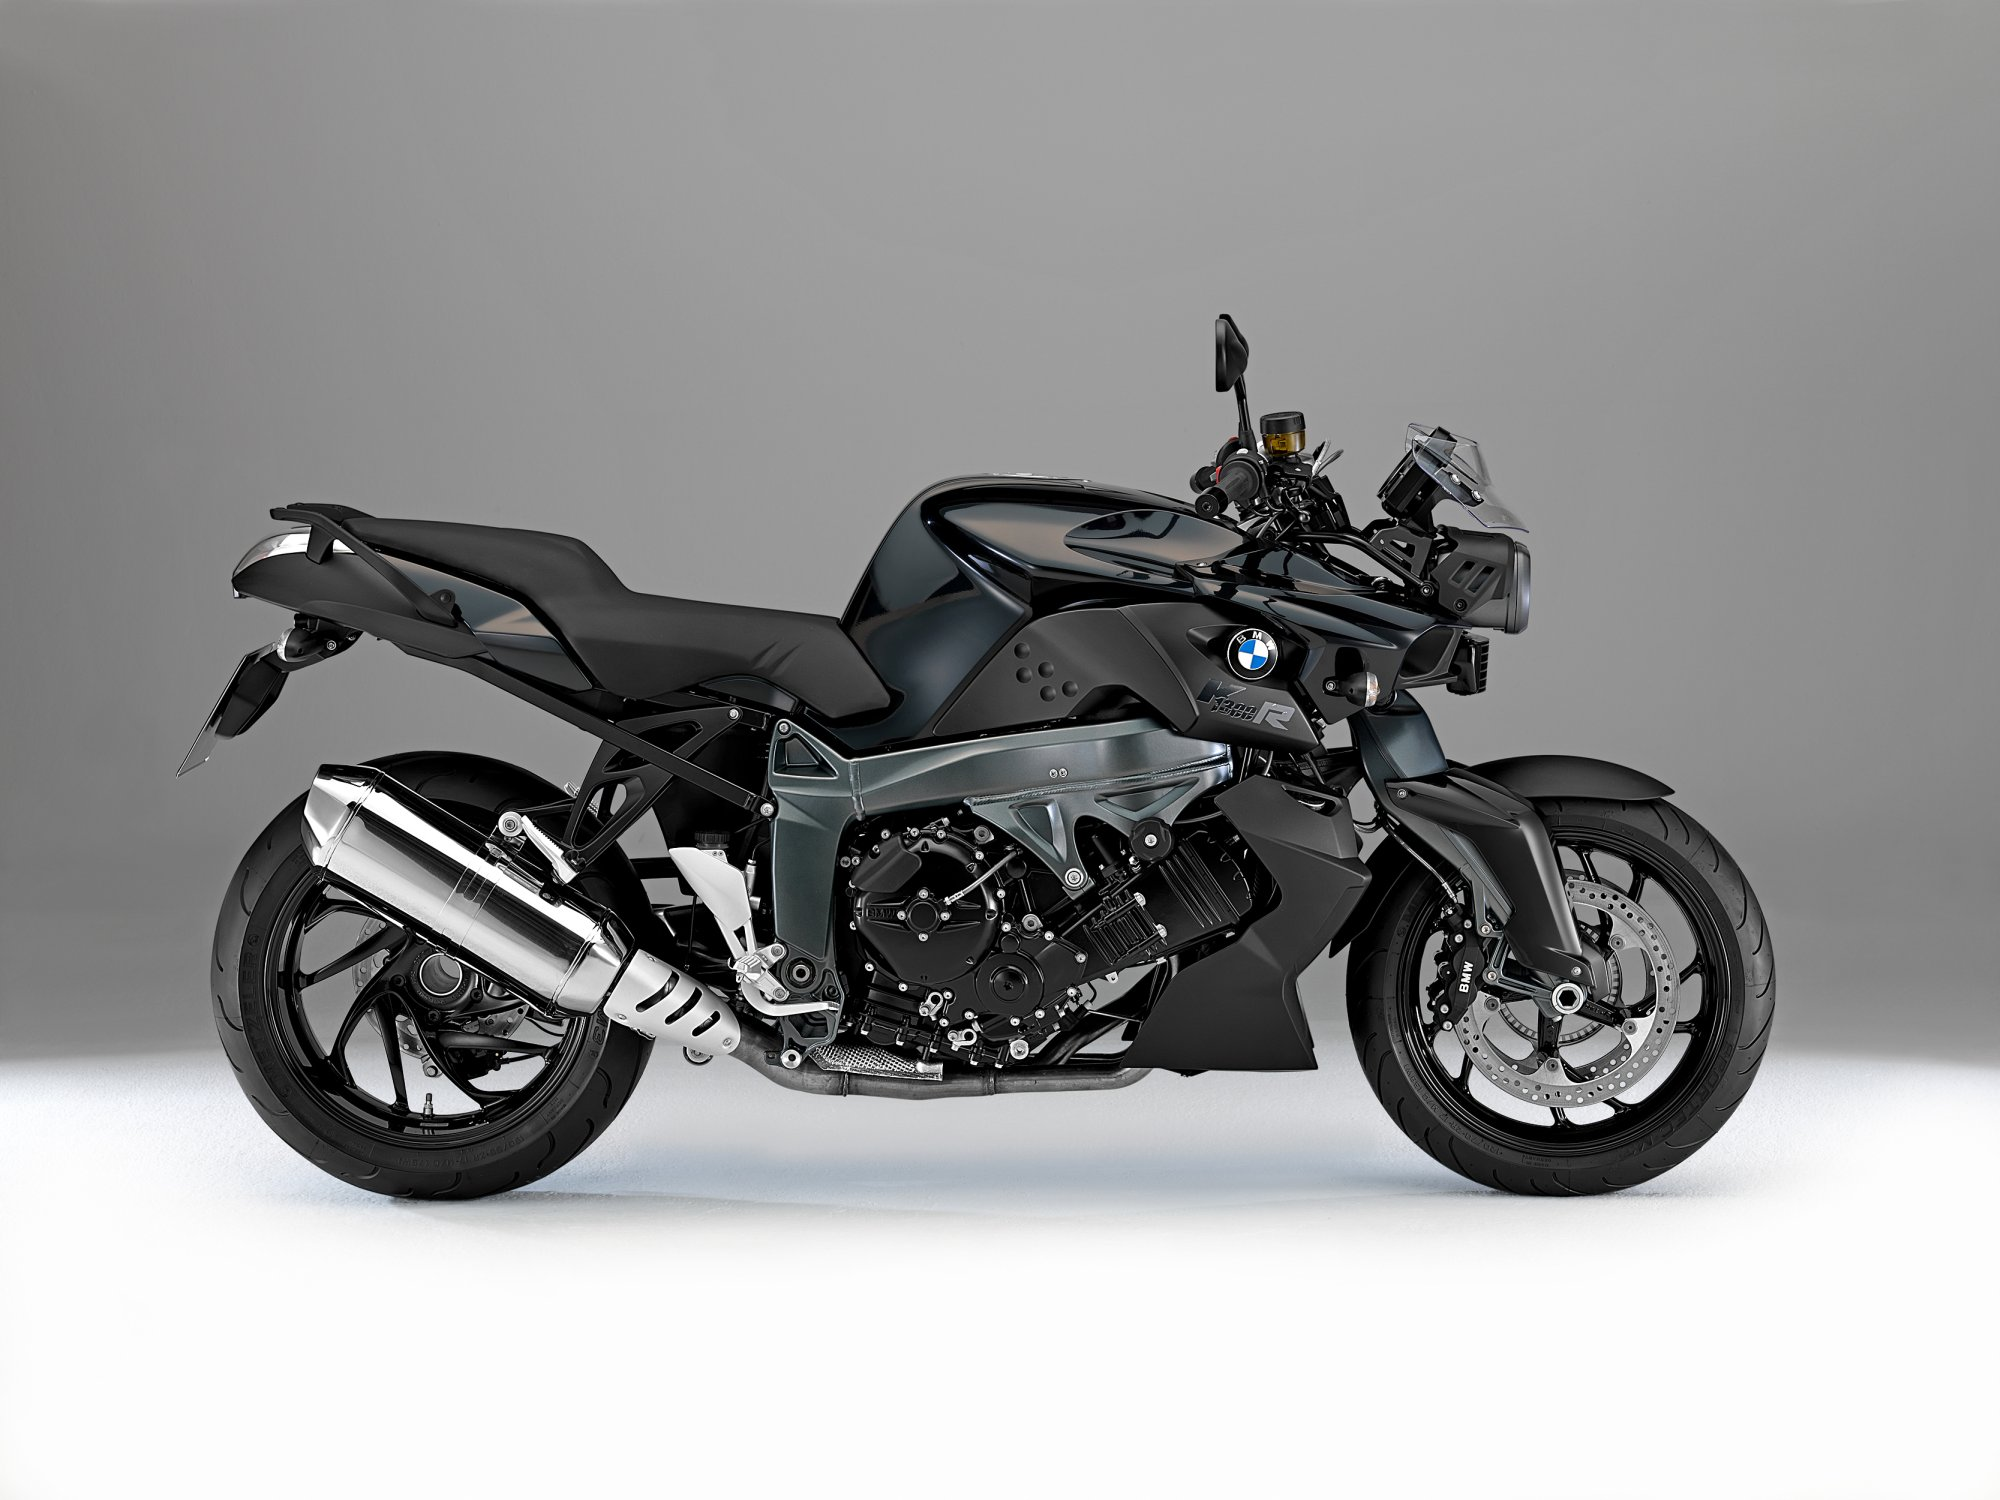 bmw k 1300 r test gebrauchte bilder technische daten. Black Bedroom Furniture Sets. Home Design Ideas